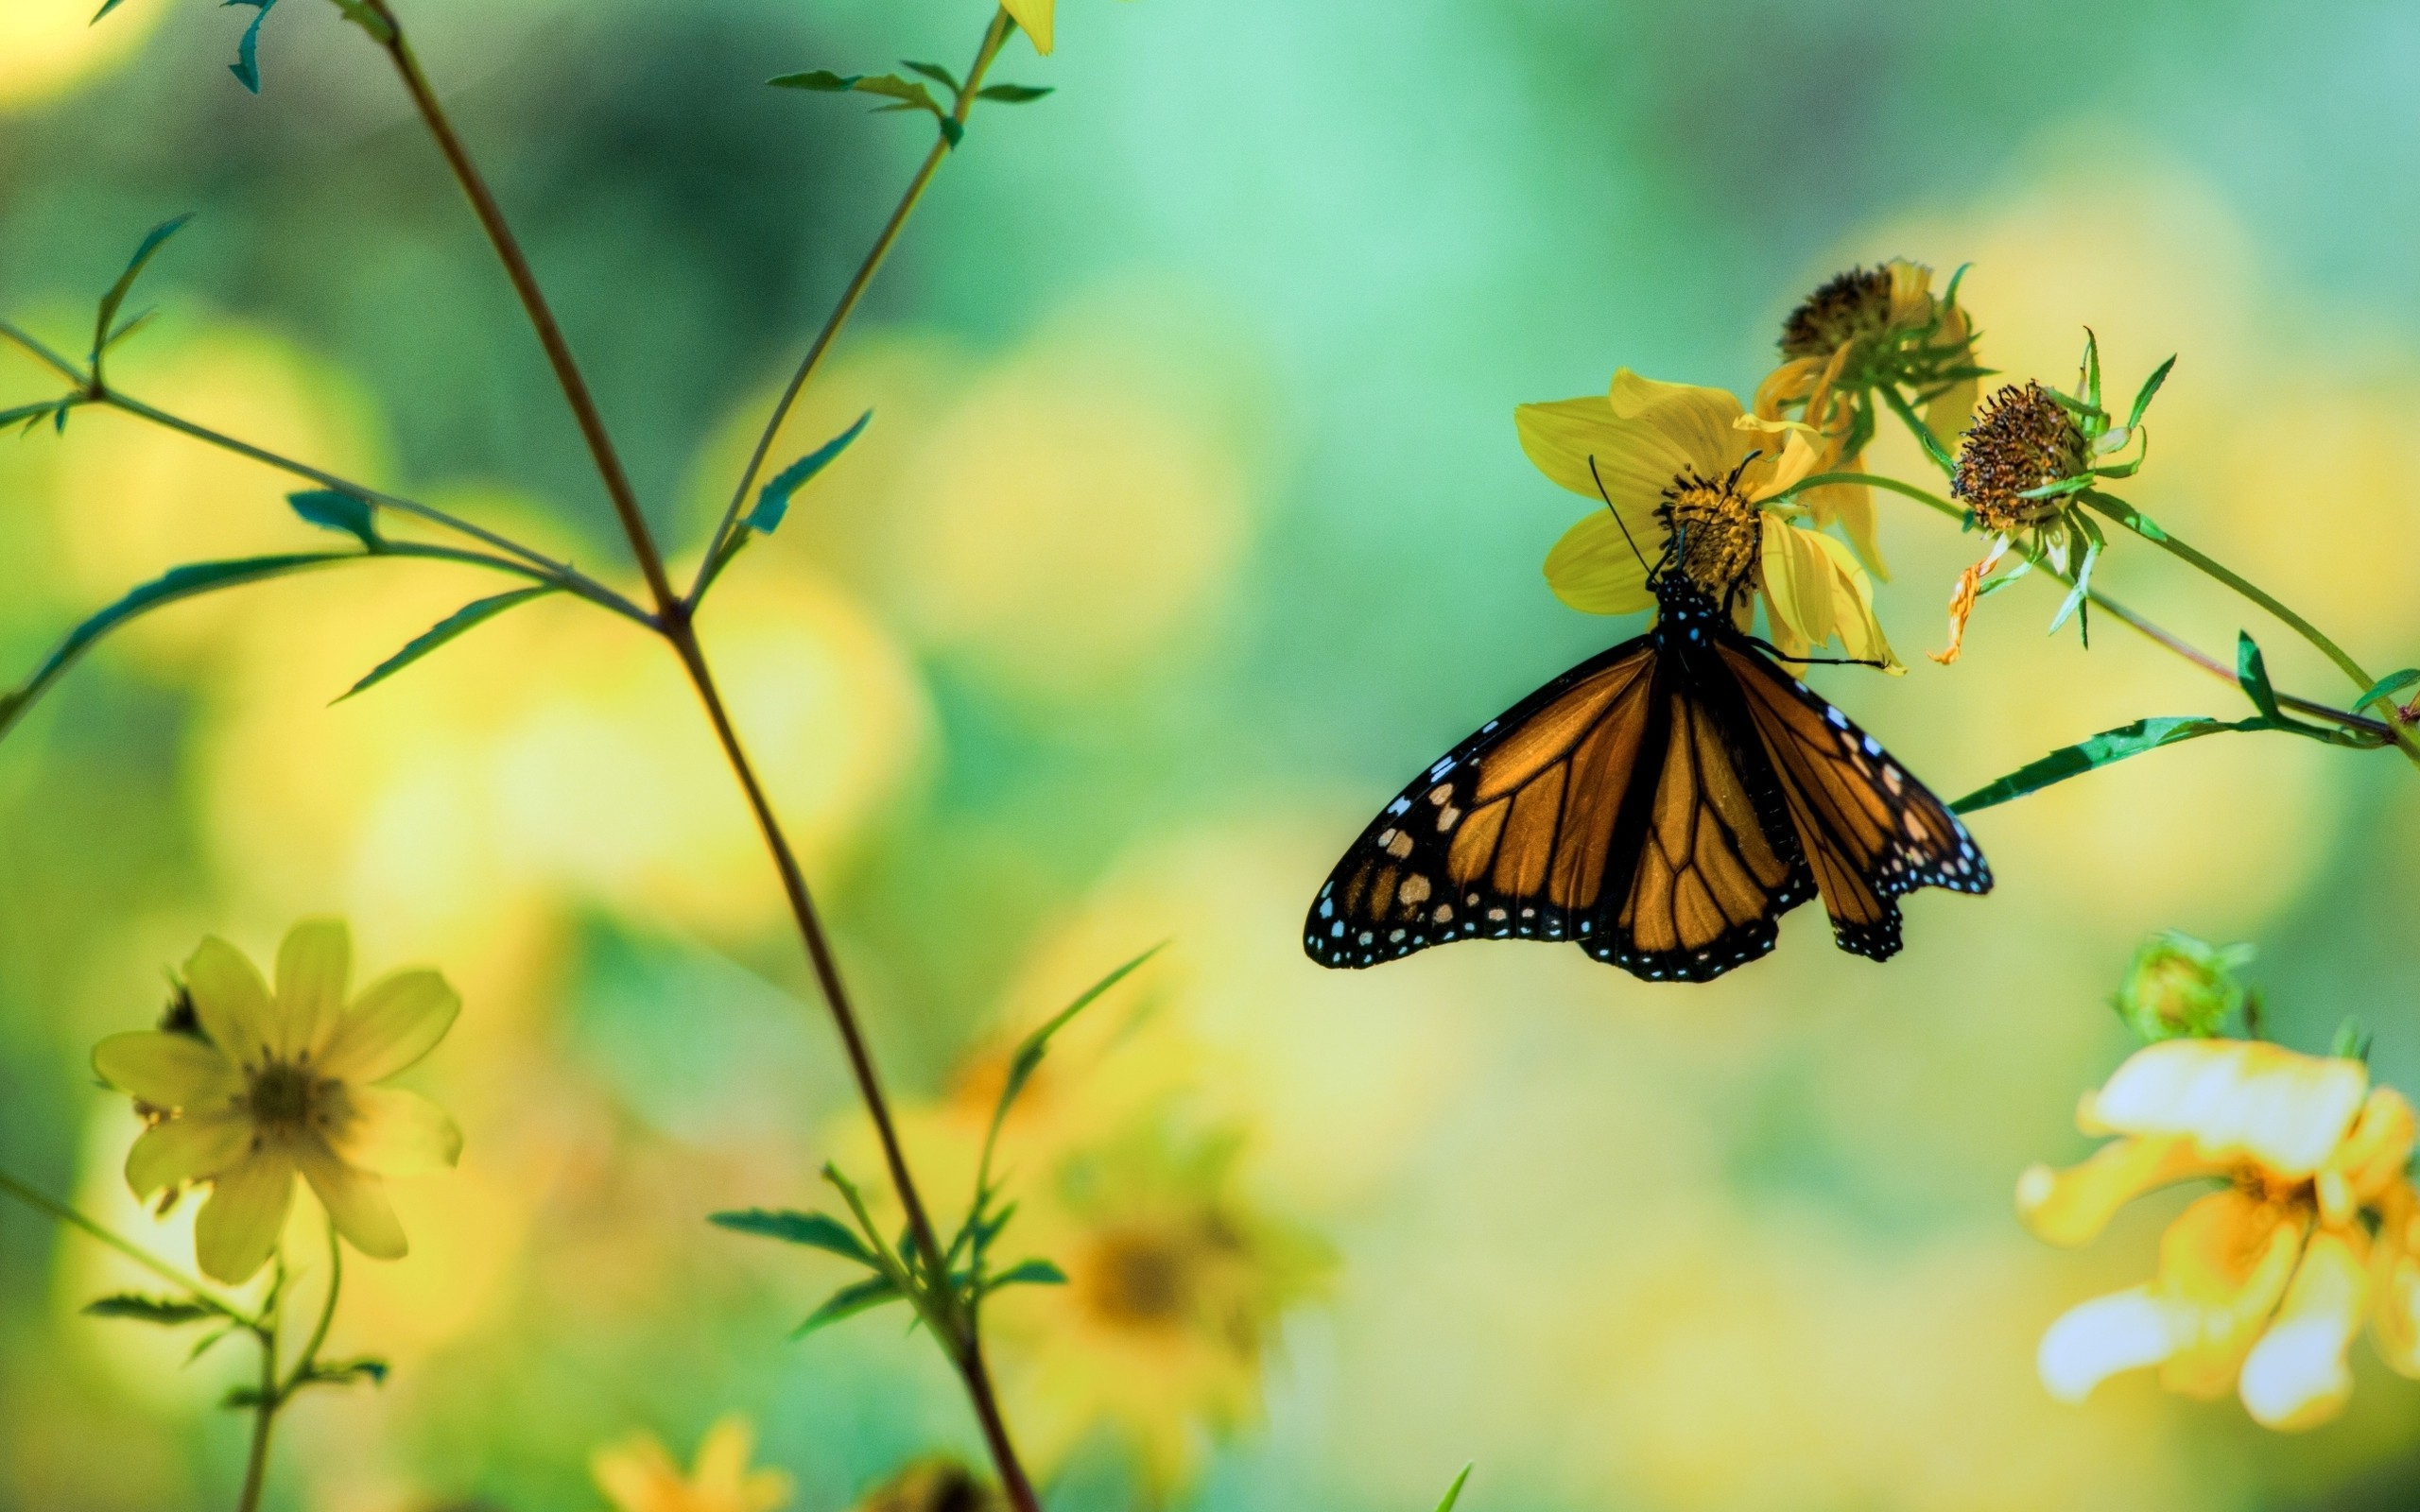 wallpaper.wiki-Beautiful-Butterfly-Perched-on-Flower-Background-